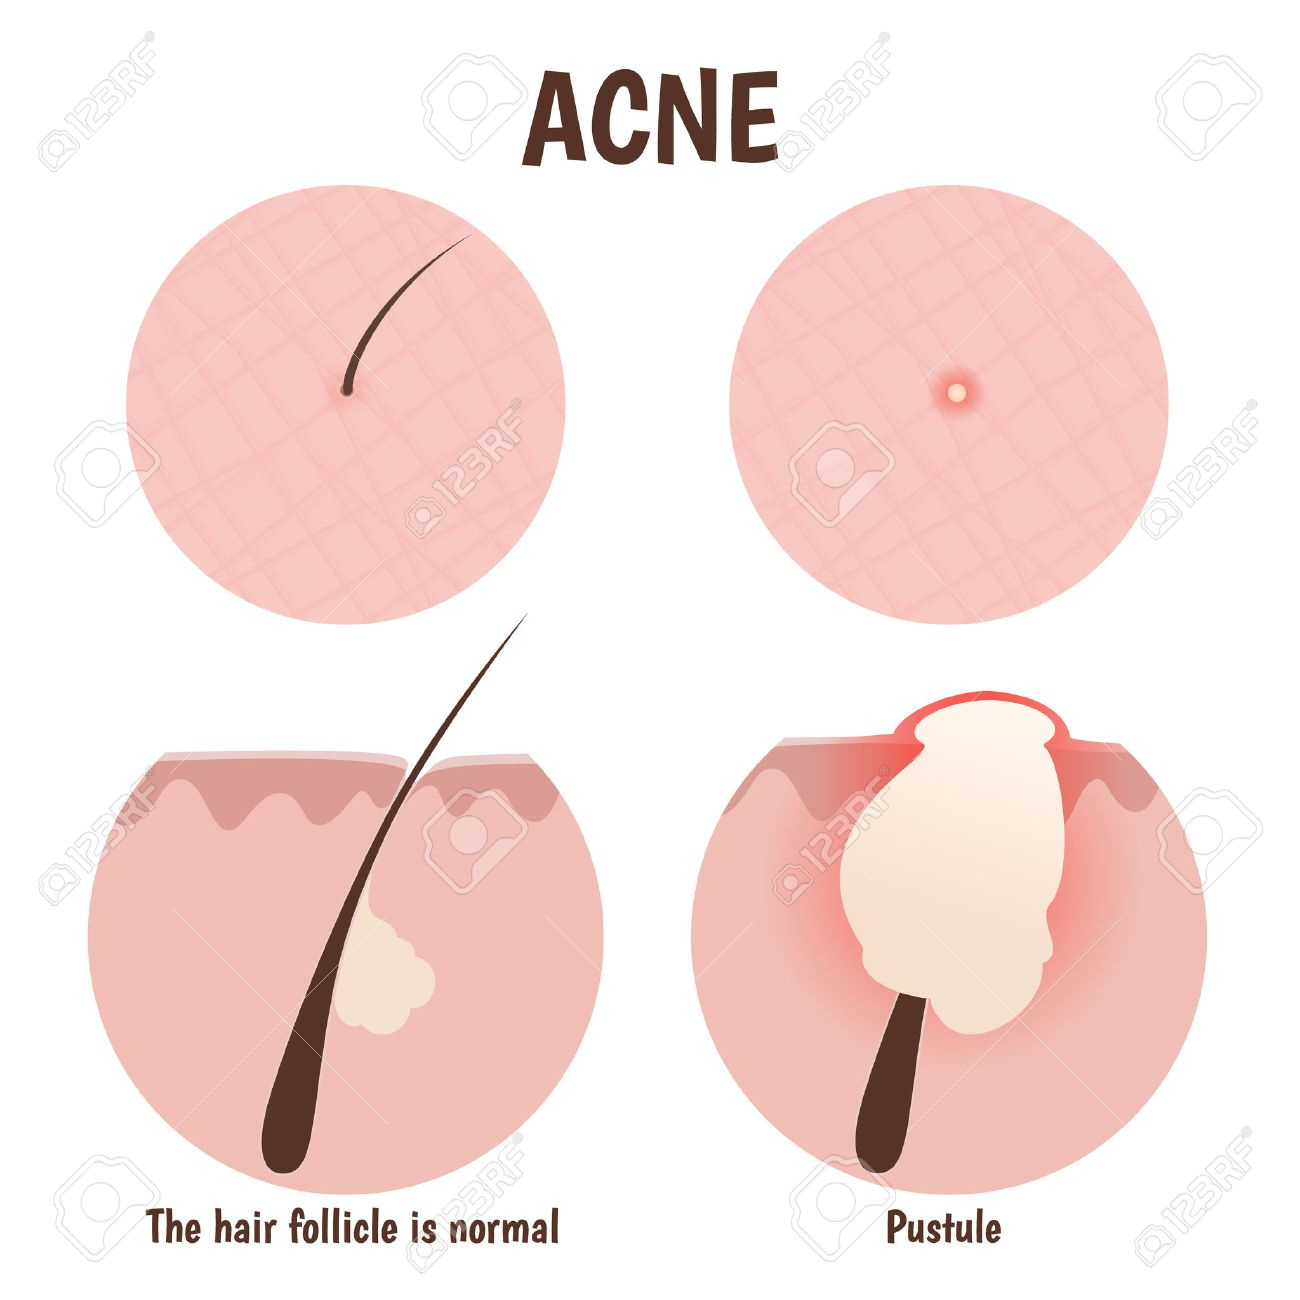 structure of the hair follicle, problem skin with pustules, pimples - 43761450